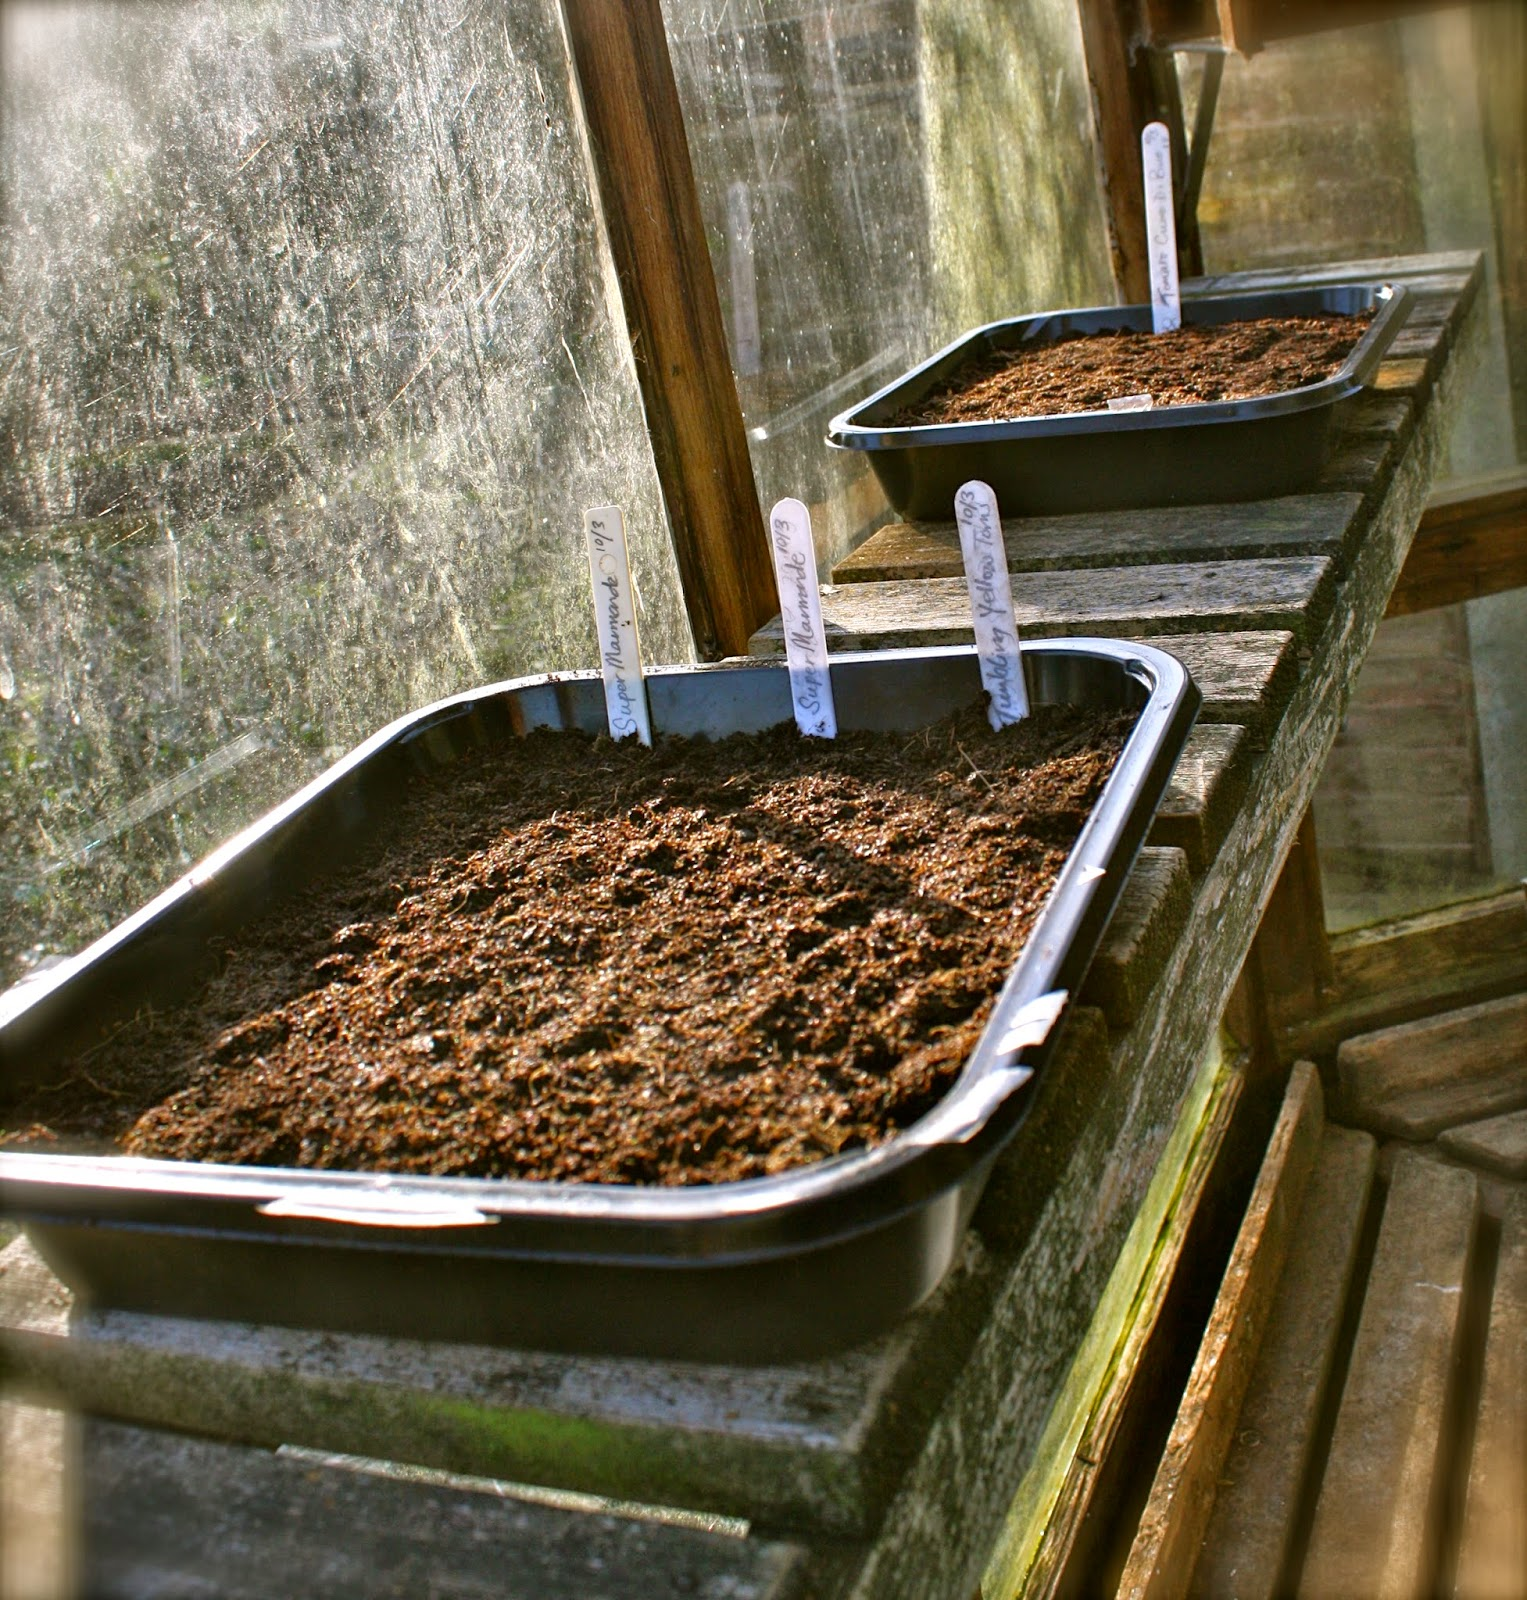 seed trays in the greenhouse